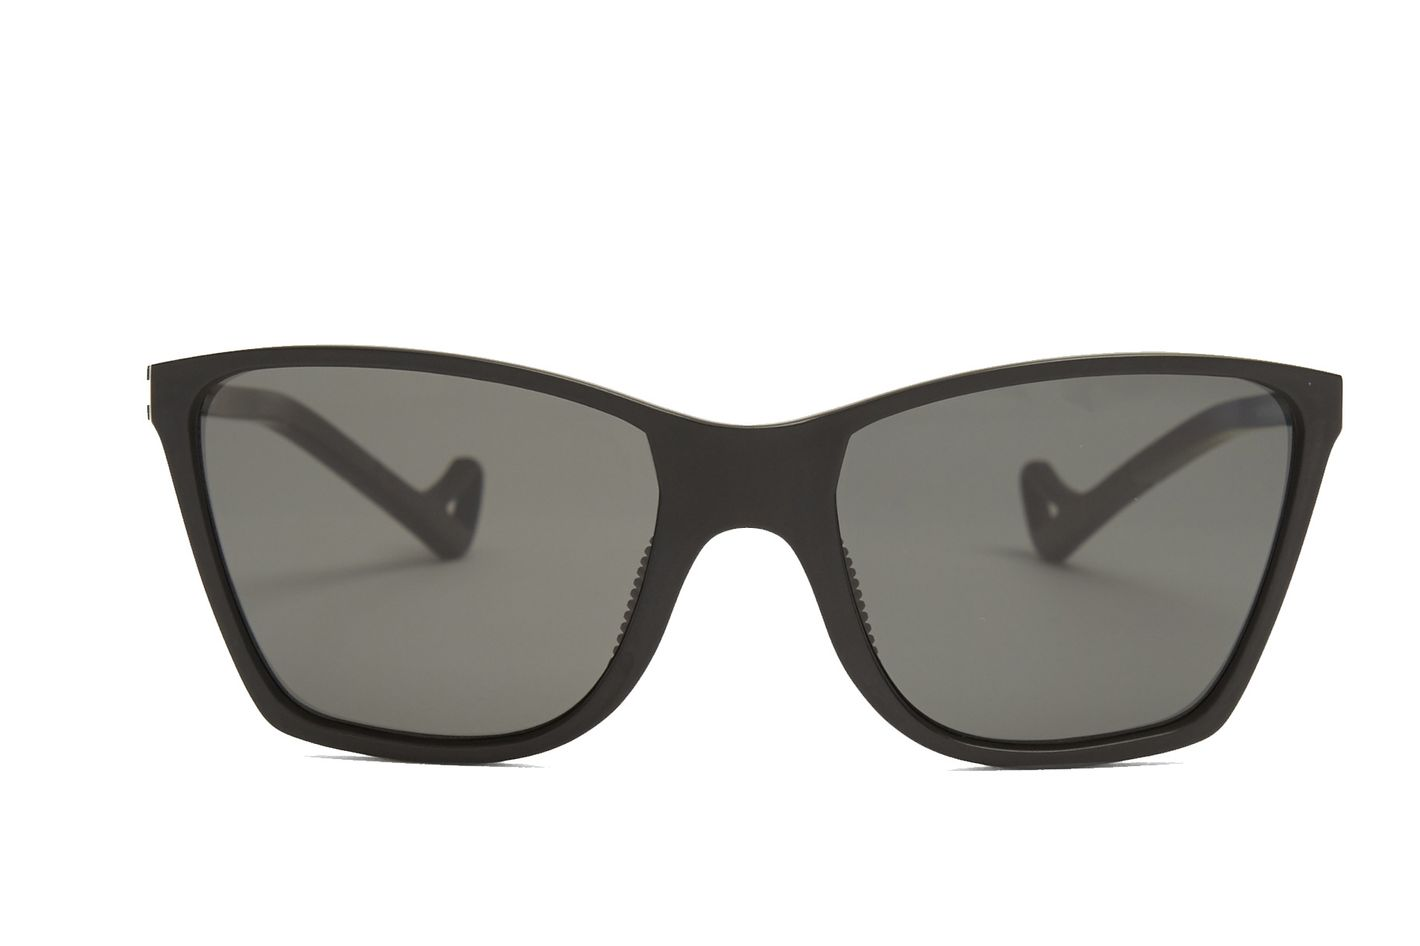 District Vision Keiichi sunglasses